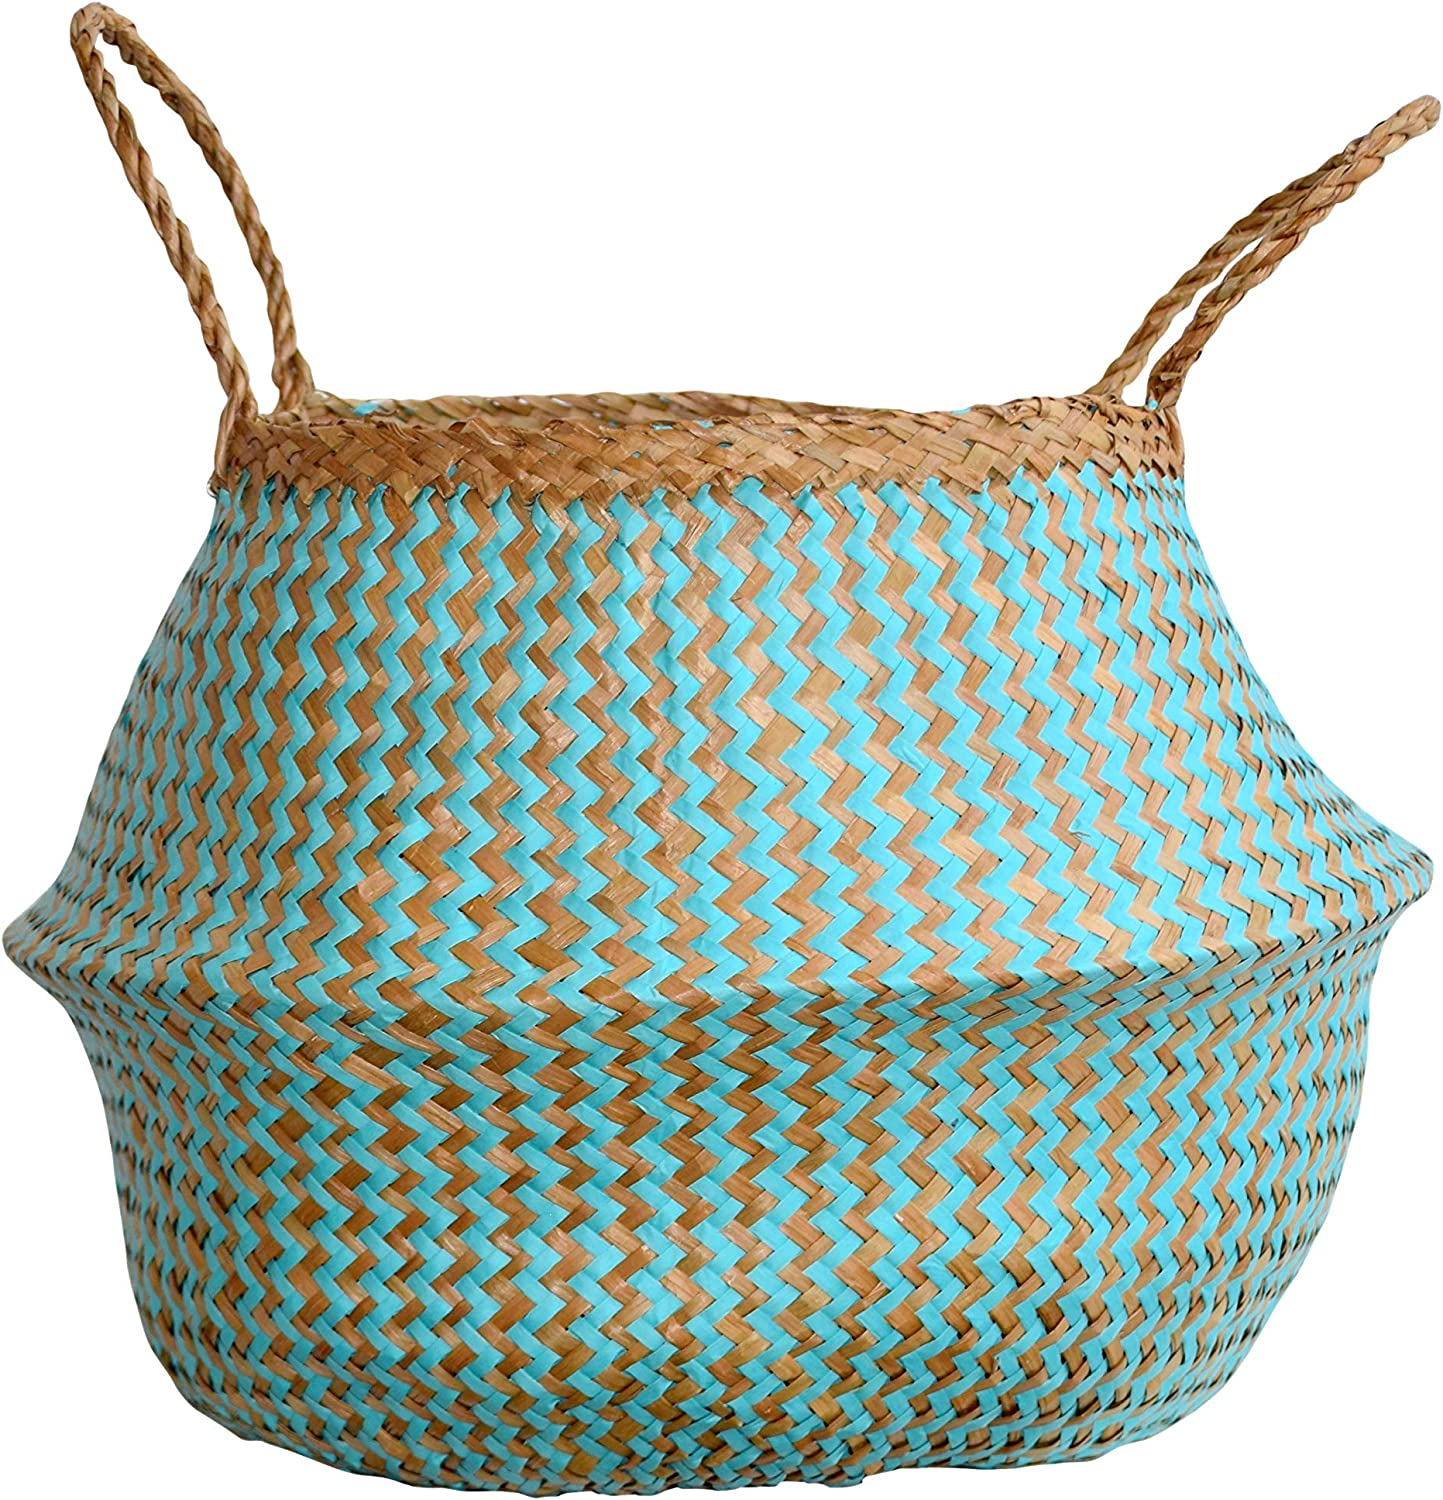 dufmod Medium Natural and Plush Woven Seagrass Tote Belly Basket for Storage, Laundry, Picnic, Plant Pot Cover, and Beach Bag (Plush Zigzag Chevron Seagrass Aquamarine, Medium)